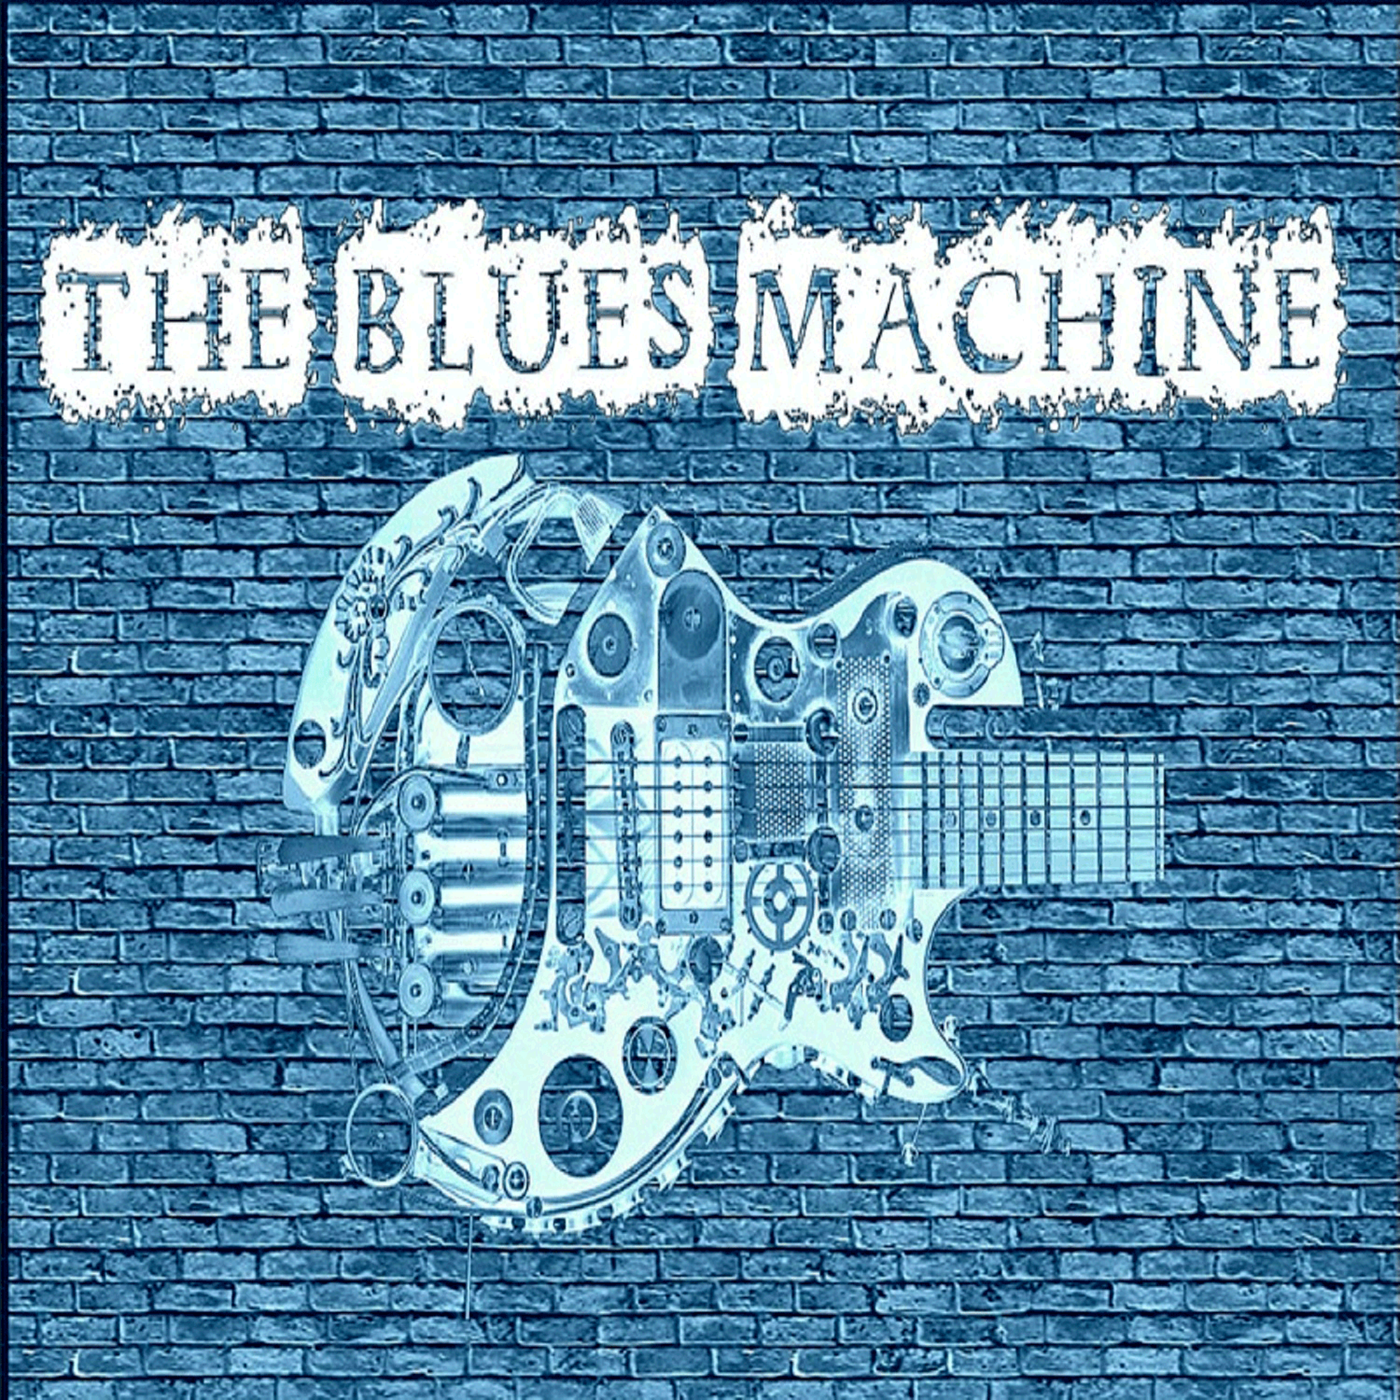 https://cdn.accessradio.org/StationFolder/freefm89/Images/Blues_Machine1.png